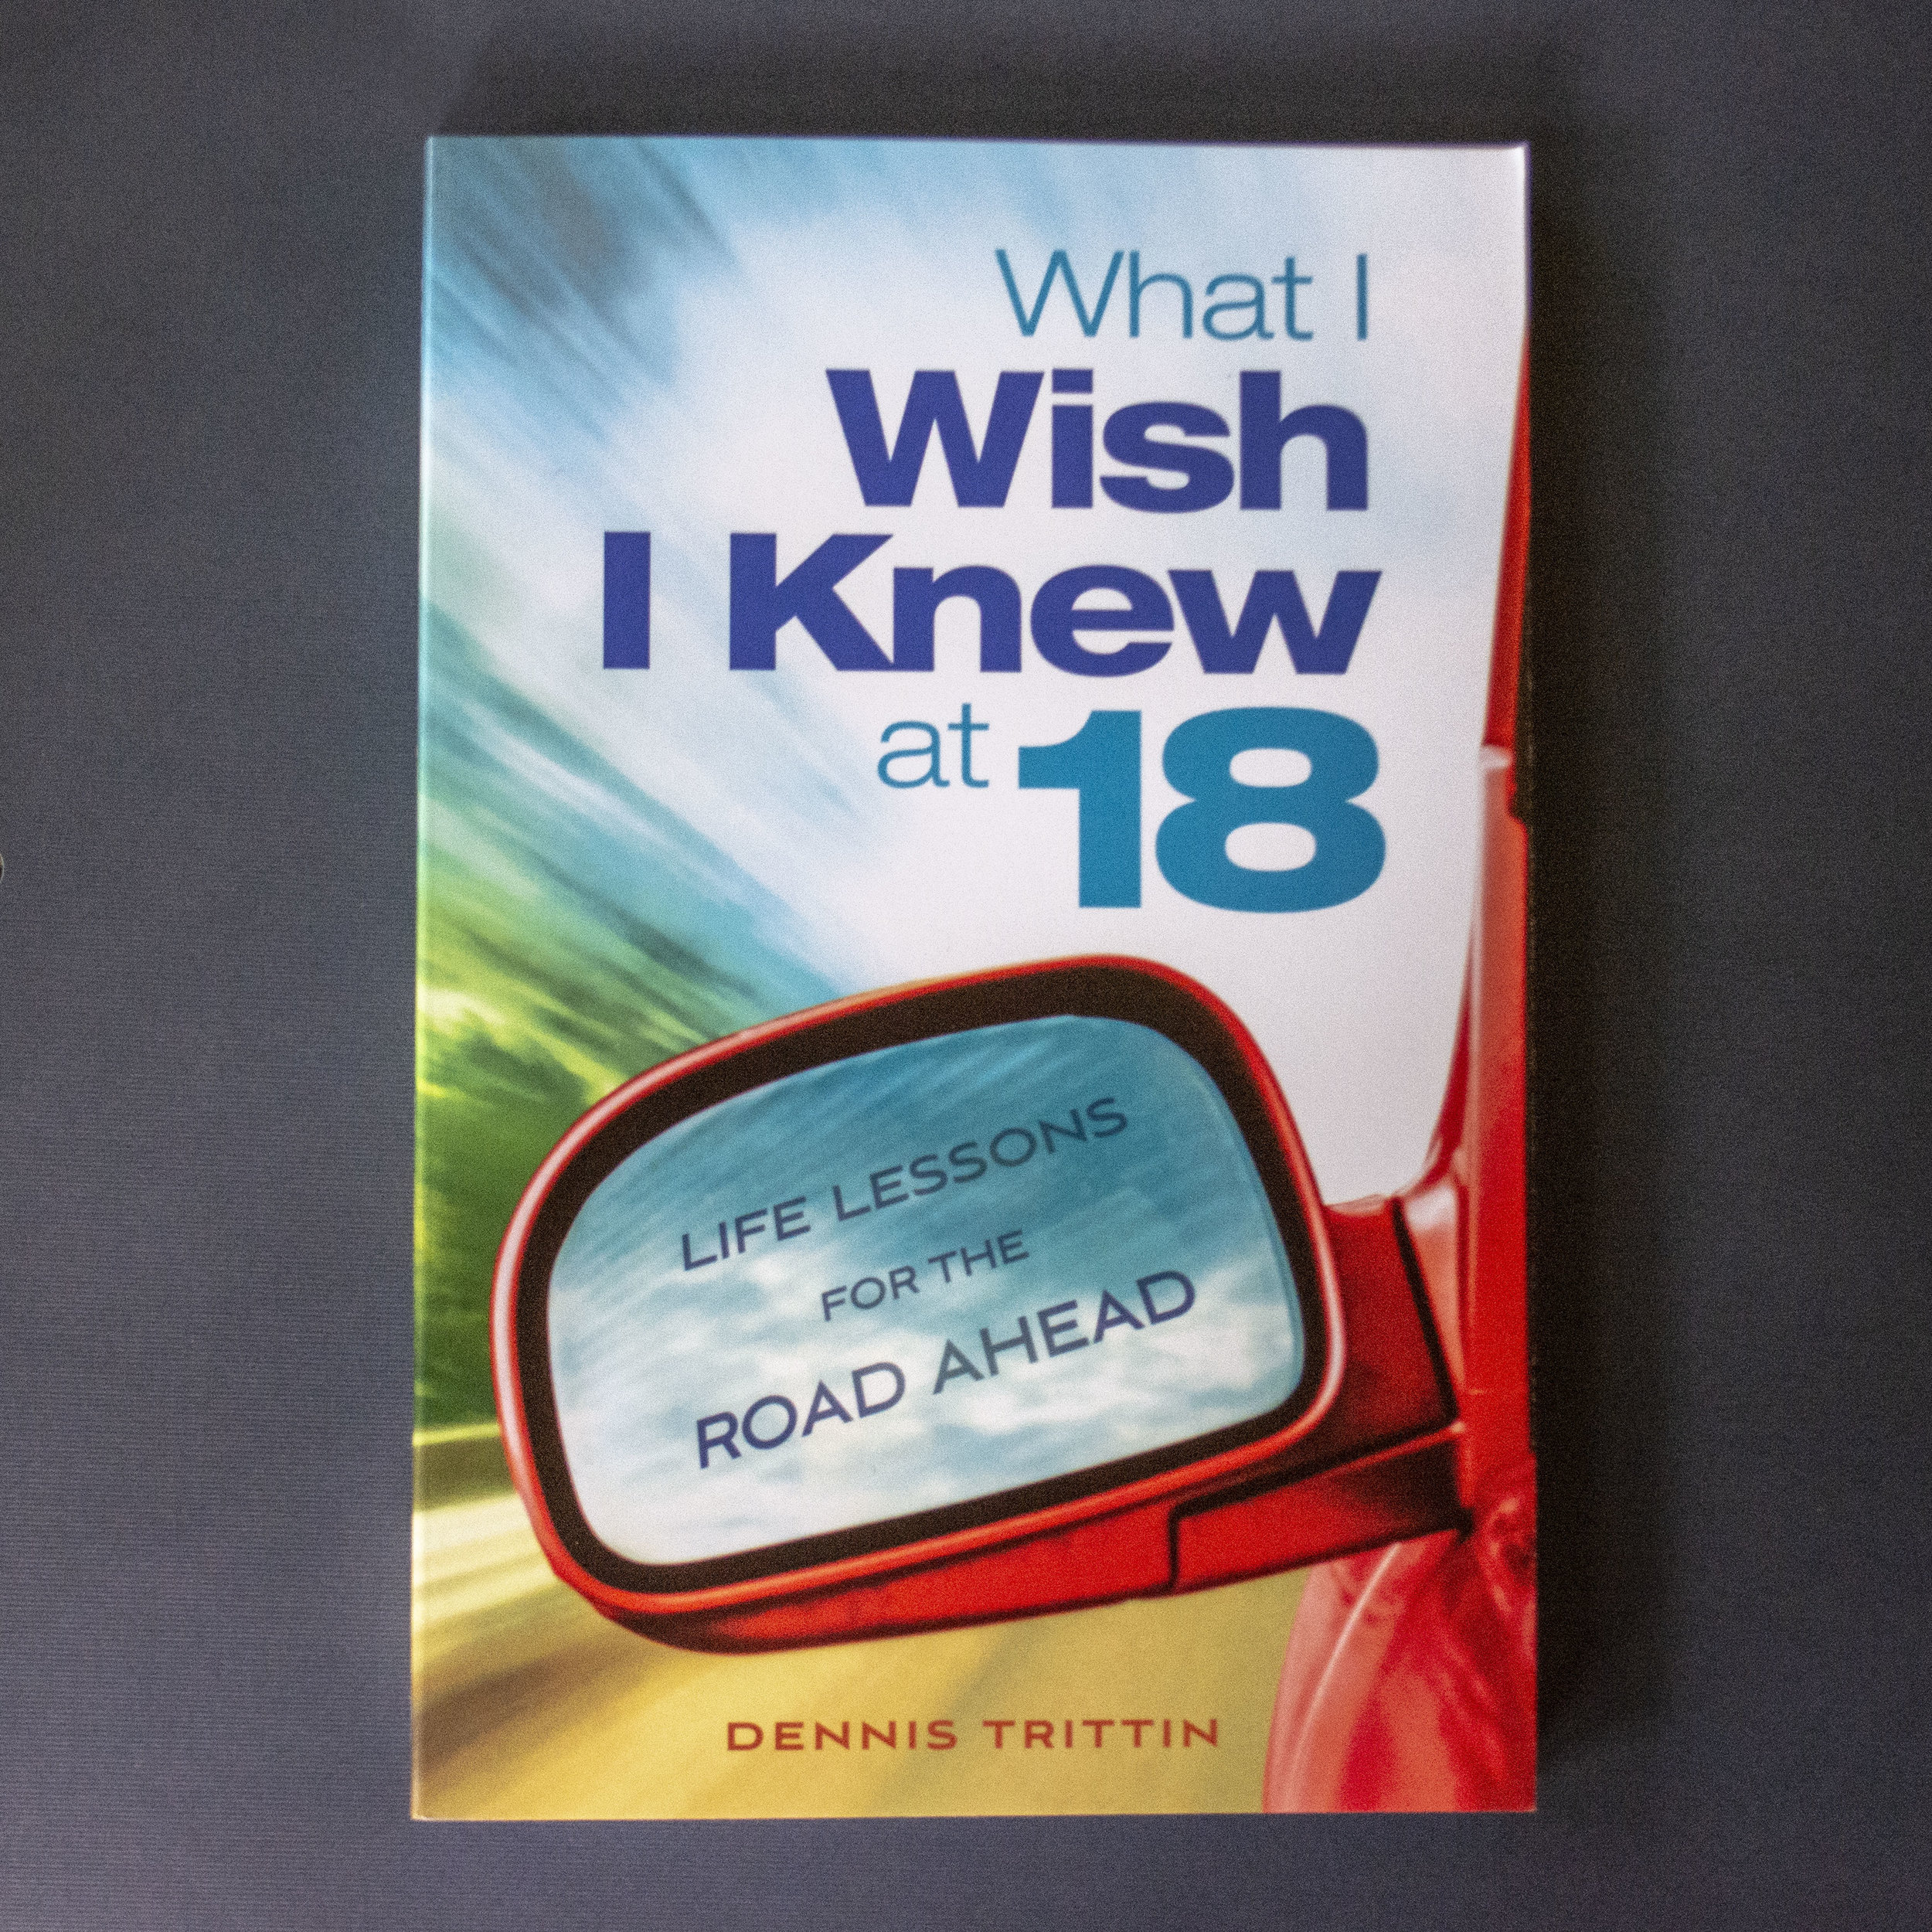 What I Wish I Knew at 18 - Dennis Trittin - What I Wish I Knew at 18 is an engaging, comprehensive, and conversational book written to help young adults achieve success in life. It provides practical, road-tested wisdom in essential life arenas as life perspective, character, relationships and communication, spiritual life, handling adversity, personal productivity, college academics, career selection and advancement, love and marriage, and managing finances. Through illustration, instruction, and reflective questions, the book reveals 109 success pointers that auger a soaring launch into adulthood. Unique in scope, universal in its message, and timely in its wisdom, What I Wish I Knew at 18 is designed to serve as an invaluable life coach.Learn more at www.dennistrittin.com